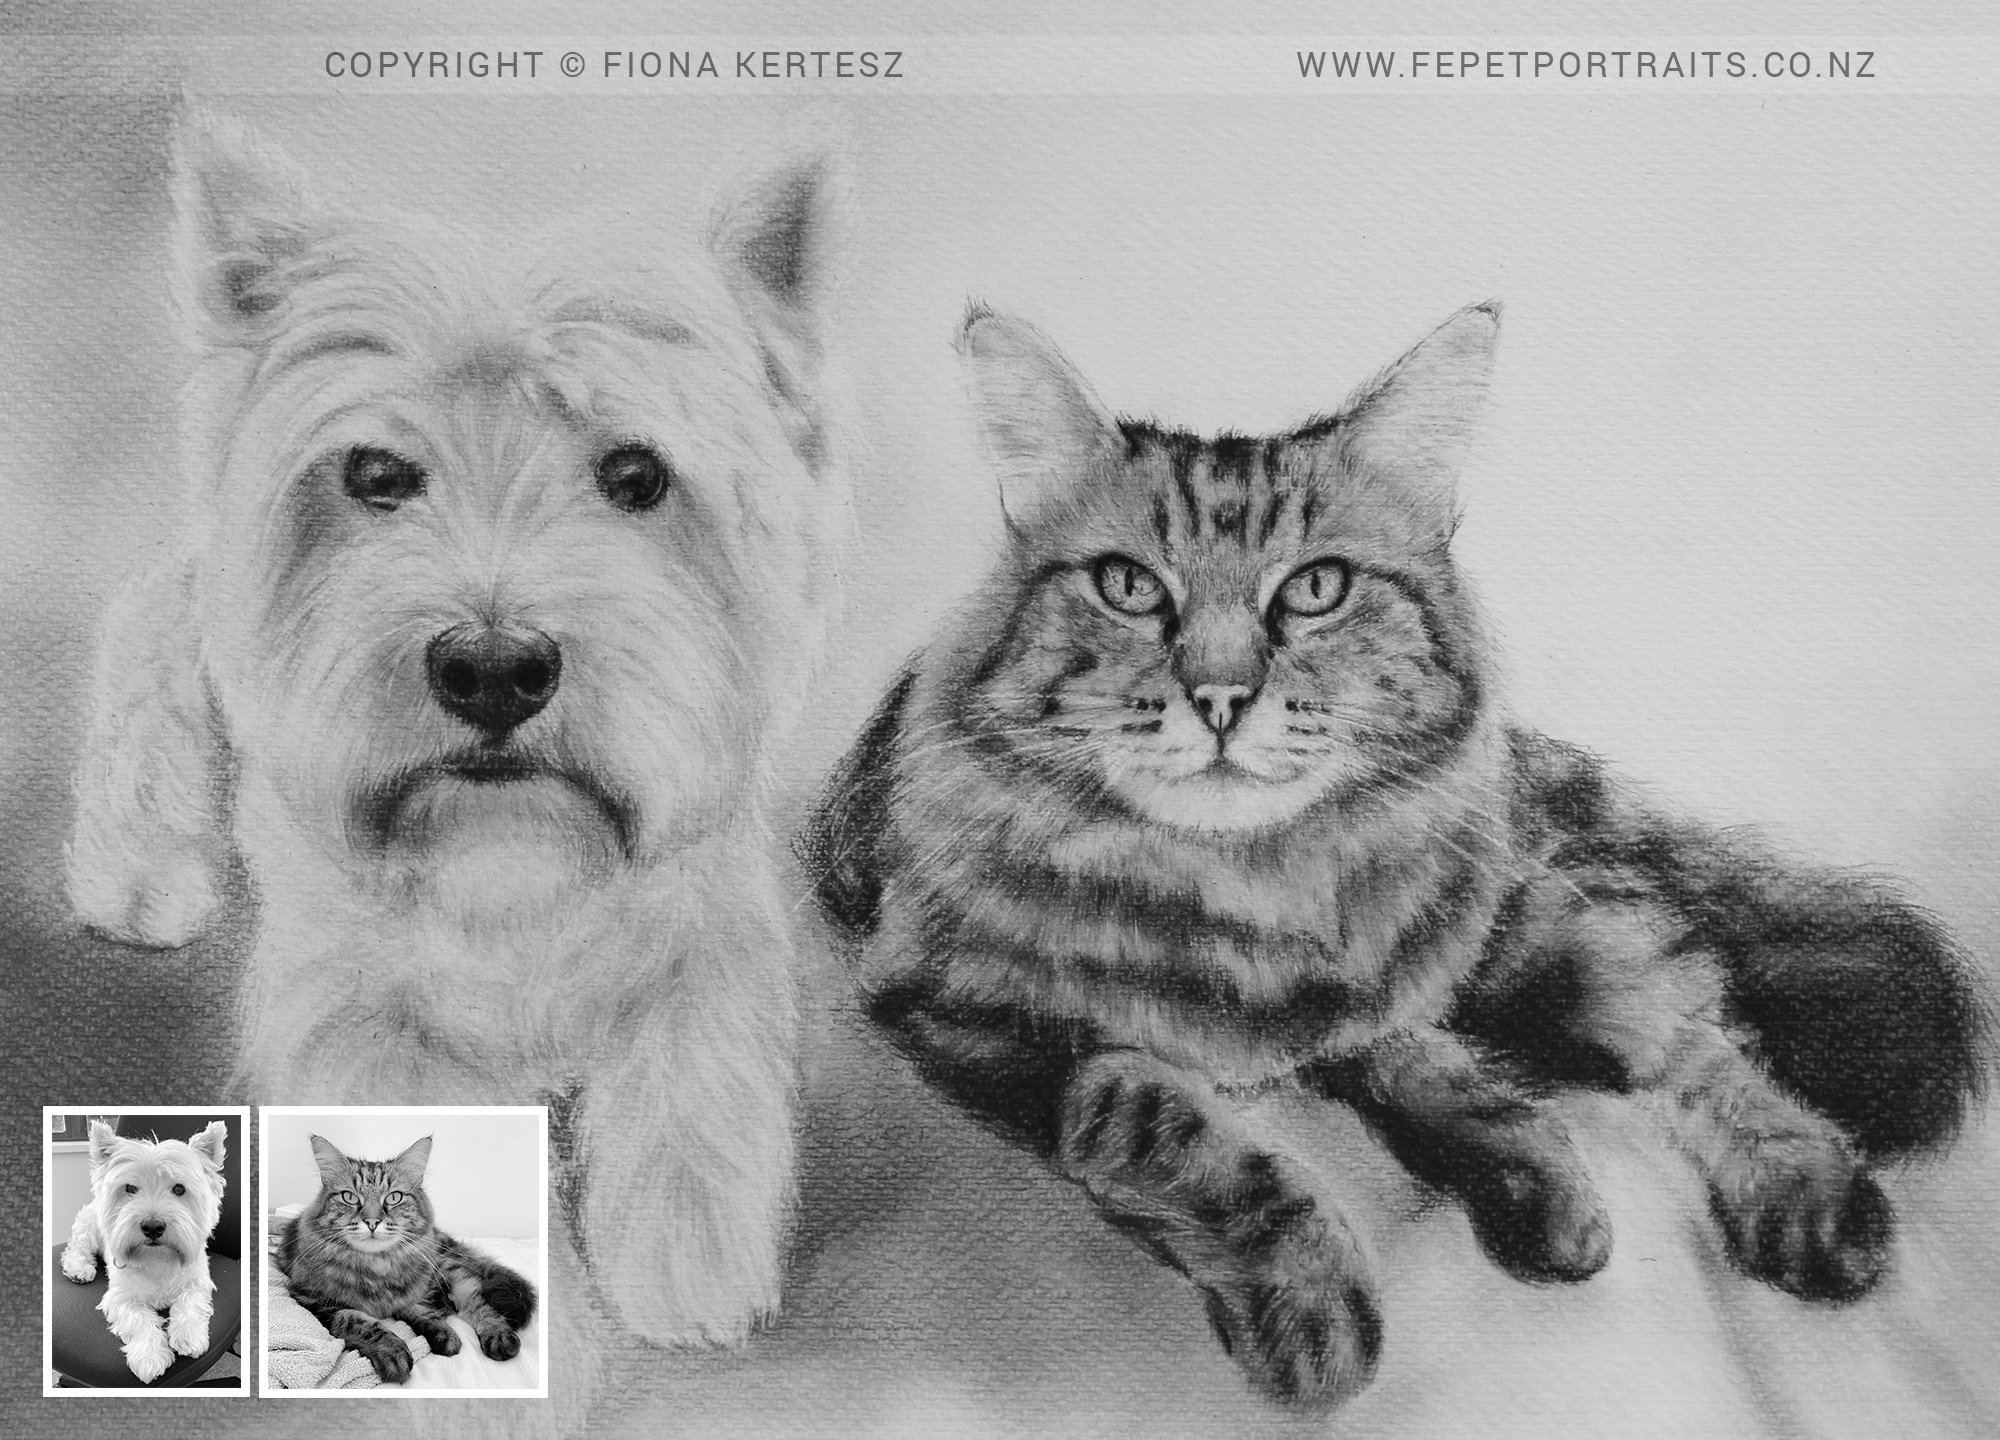 Freddie and Bax, Pencil Portrait, 16 x 12 inch